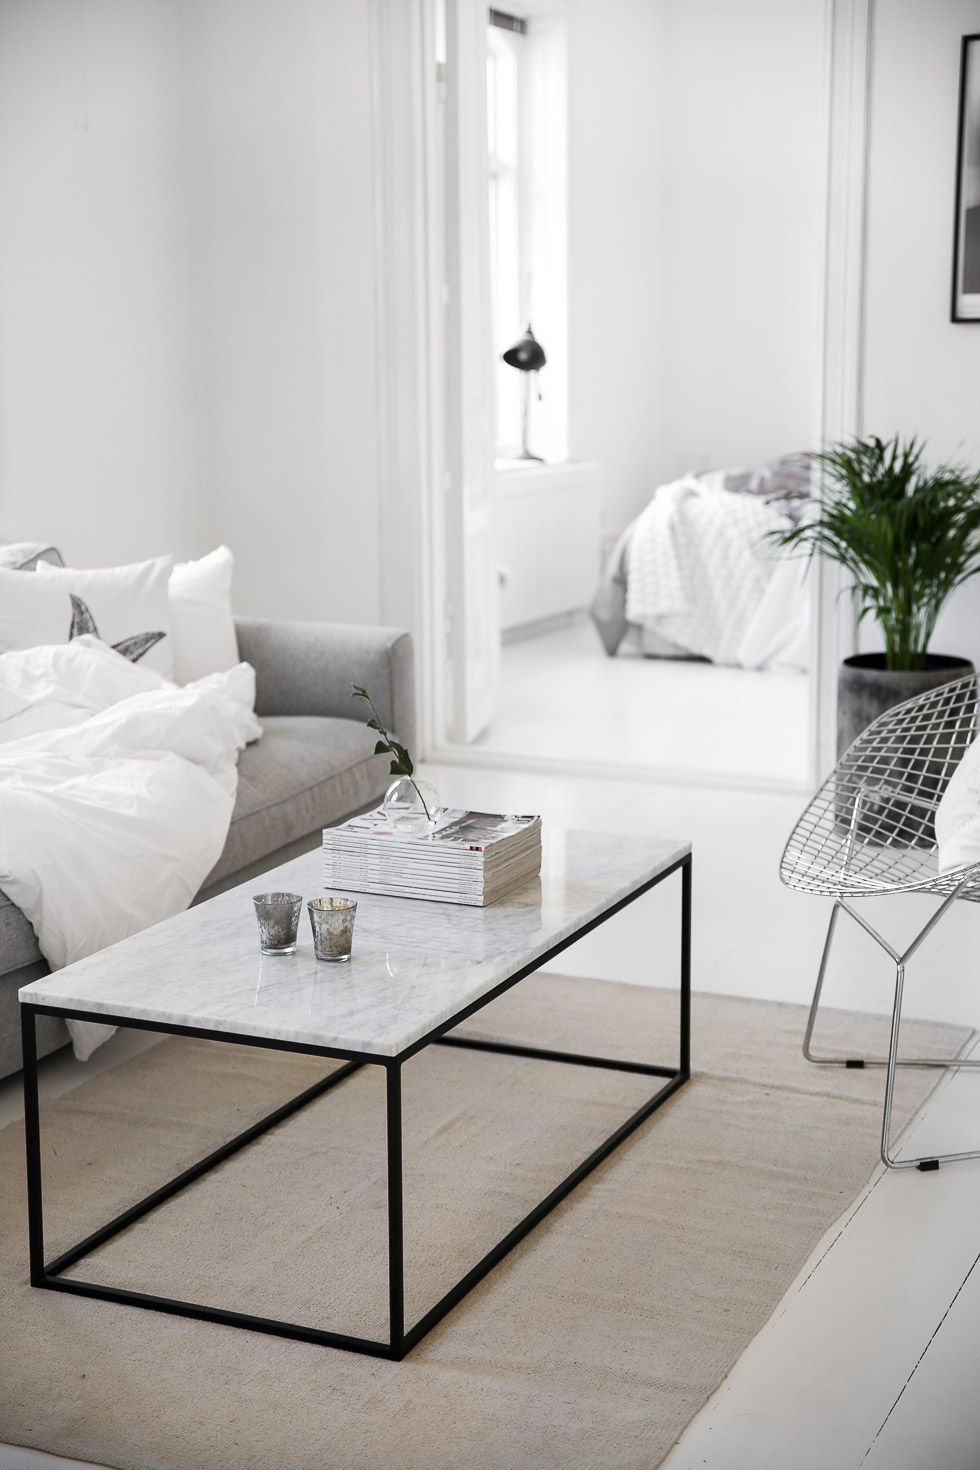 marble table living pinterest marbles interiors and living rooms. Black Bedroom Furniture Sets. Home Design Ideas